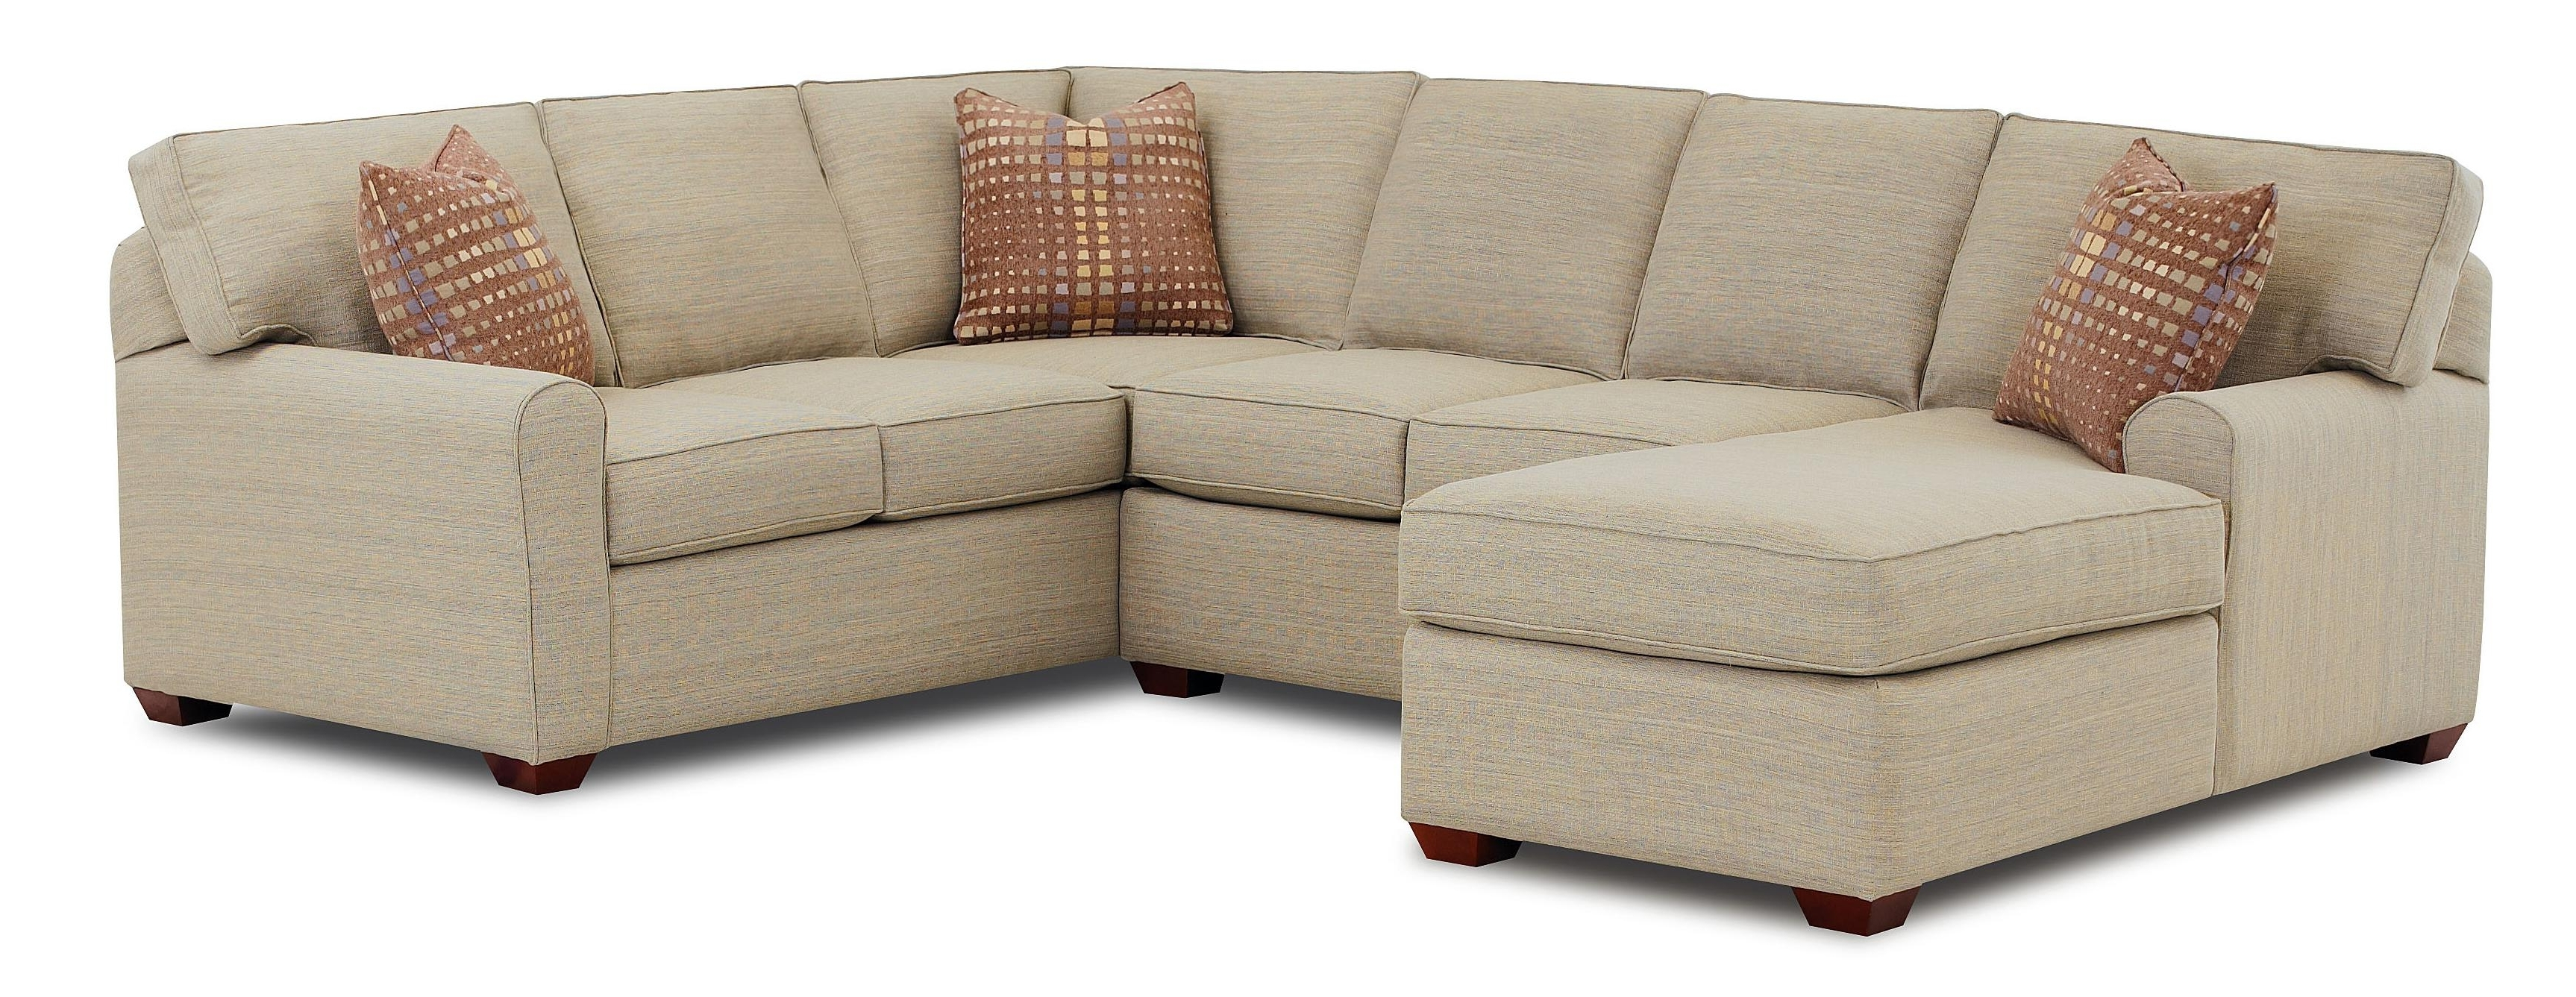 Most Up To Date Sectional Sofa With Left Facing Chaise Loungeklaussner (View 8 of 15)